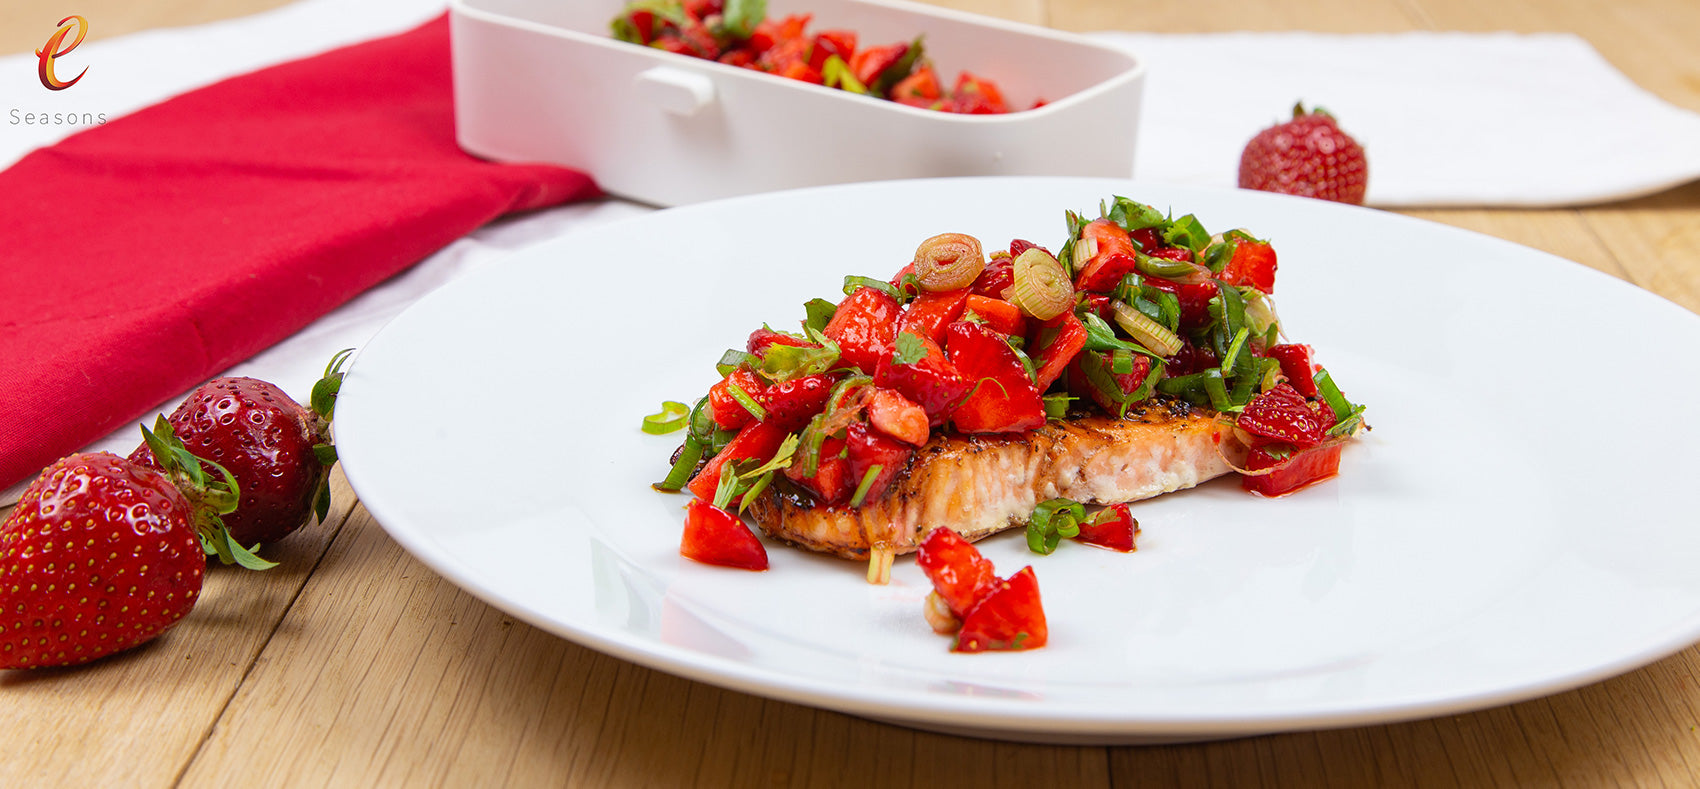 Salmon & Balsamic Strawberry